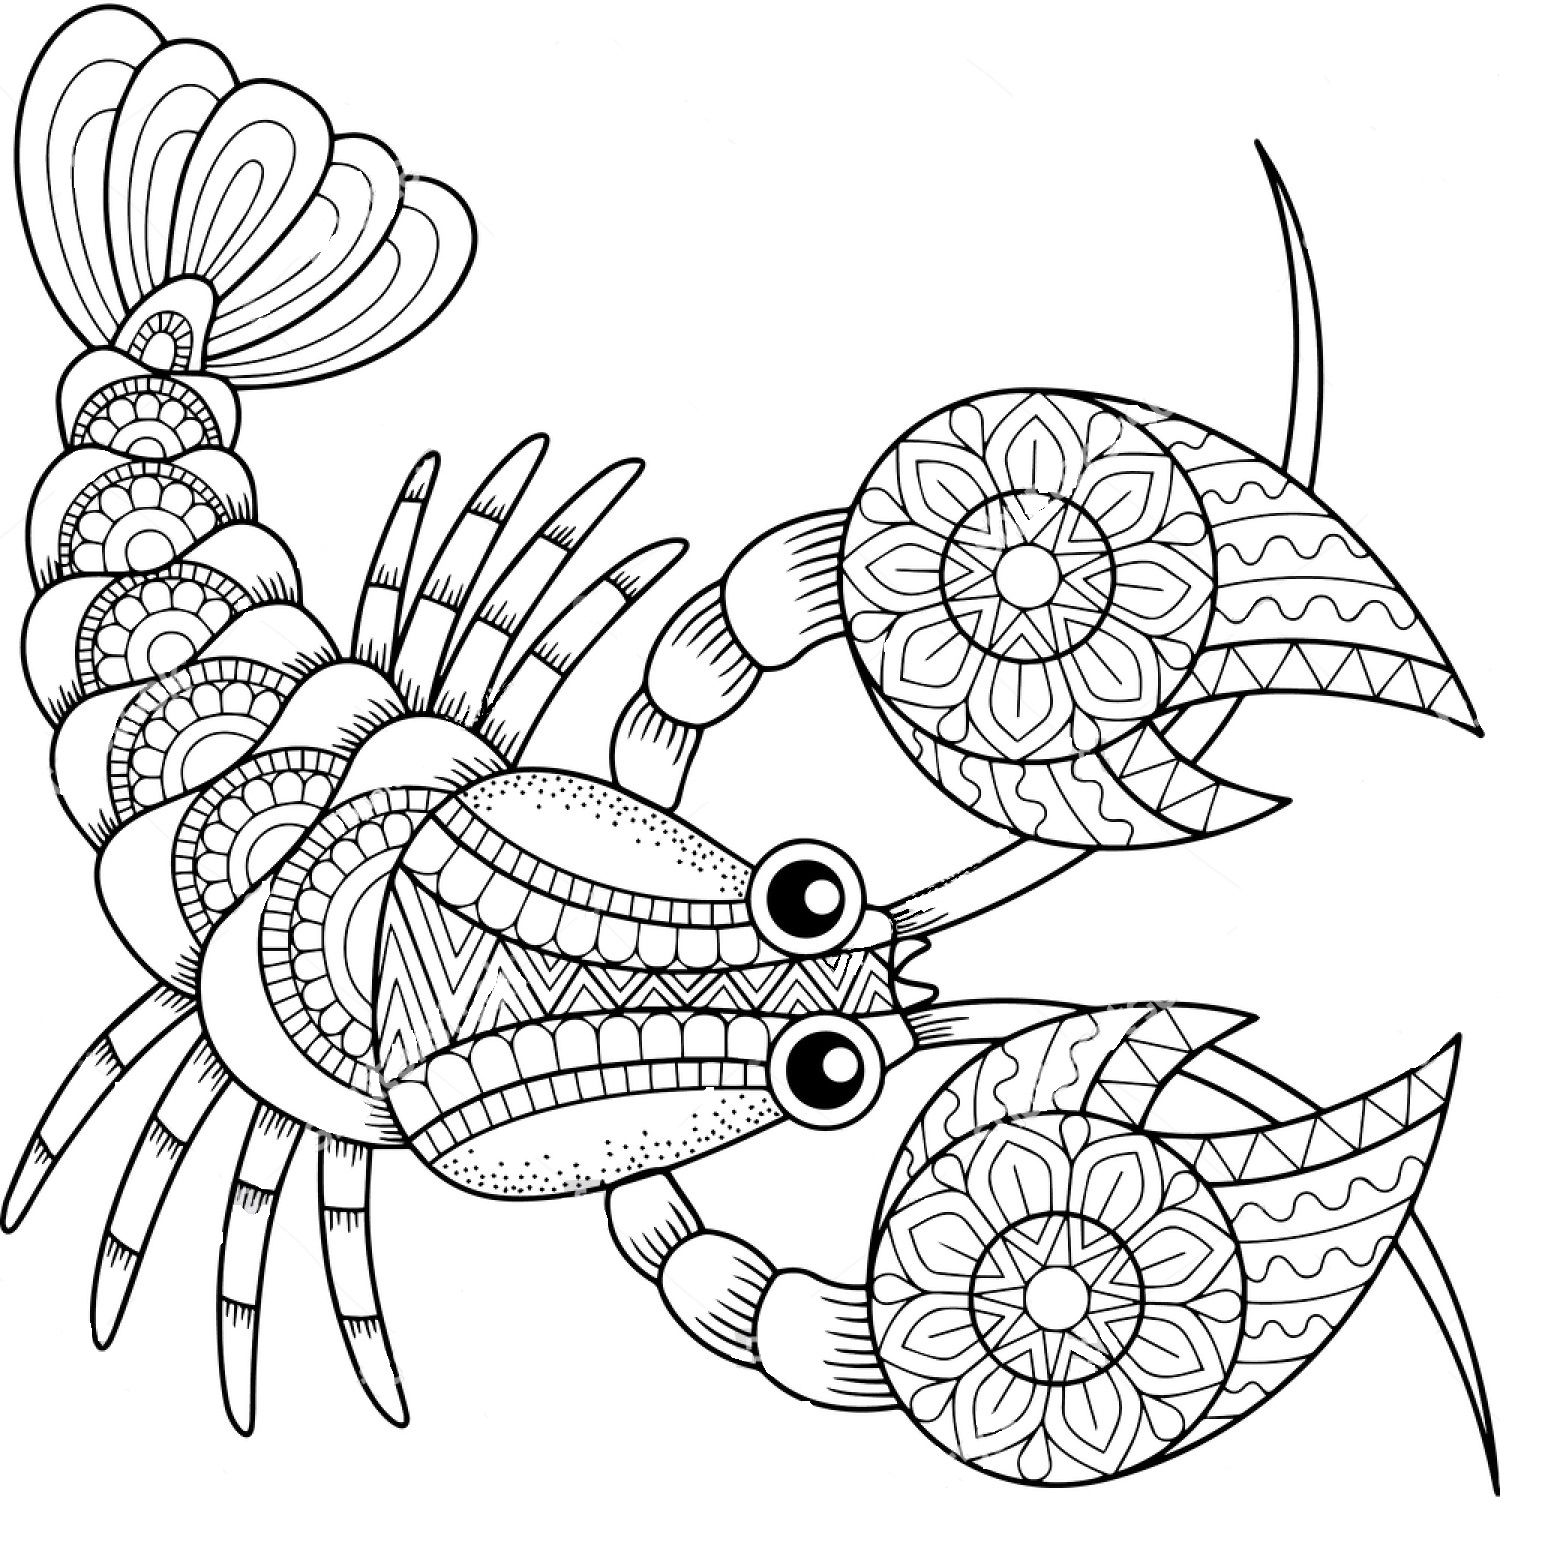 Cancer zentangle coloring page | раскраска | Pinterest | Mandalas ...